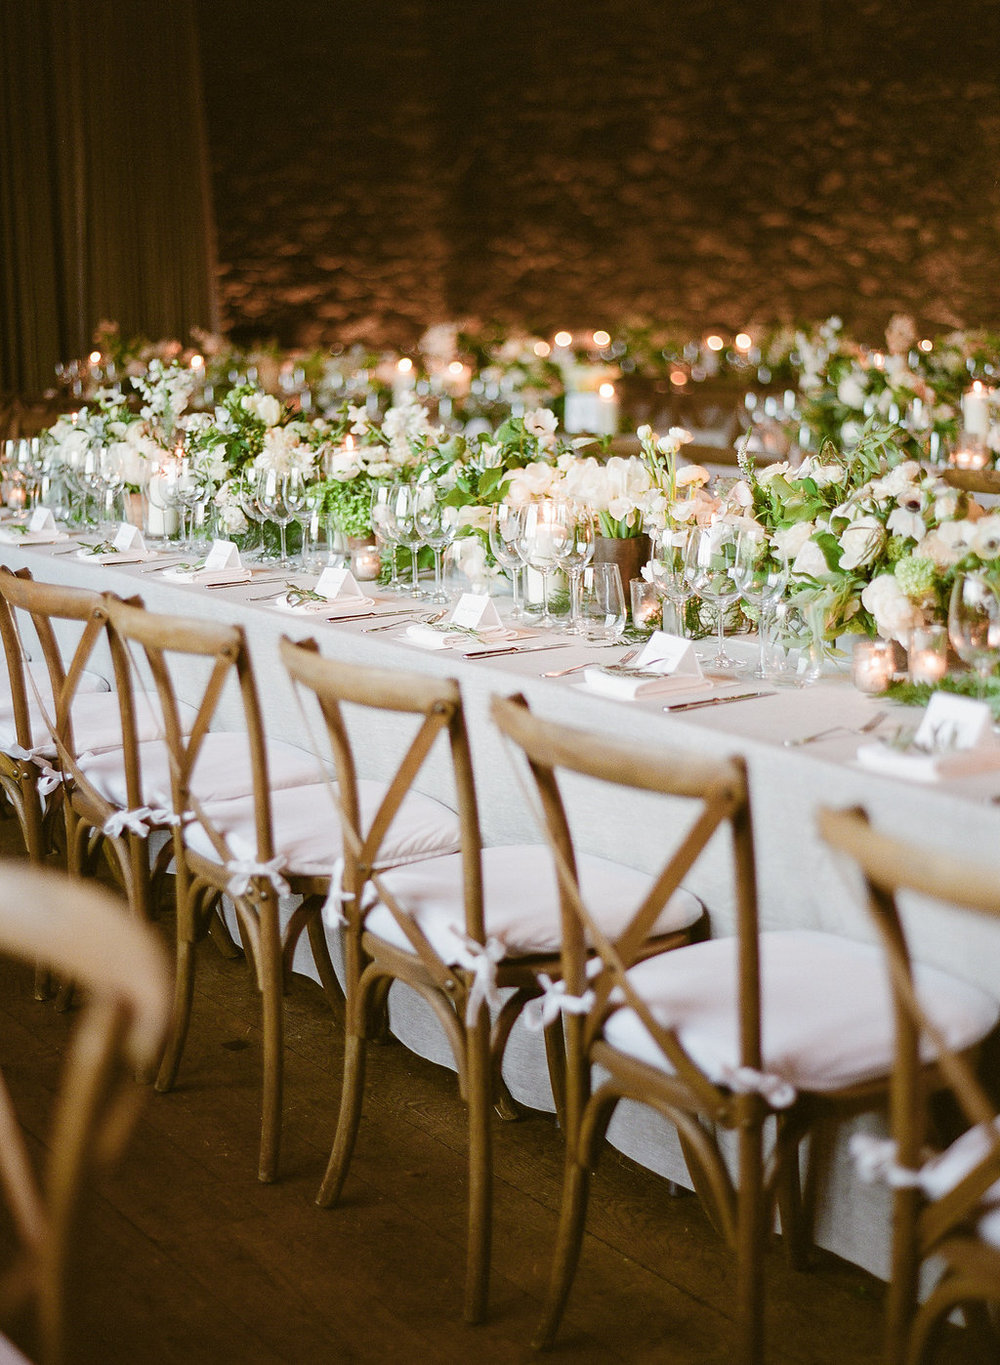 Catering: Marlow Events   Venue: The Castle   Photo: Heather Waraksa   Chairs: Rent Patina   Linen: Nuage   Tabletop Rentals: Eleven36   Cocktail: Jesse Blades and Plant People   Stationery: Venamour   Flowers: Saiupa   Music: DJ Inbetween